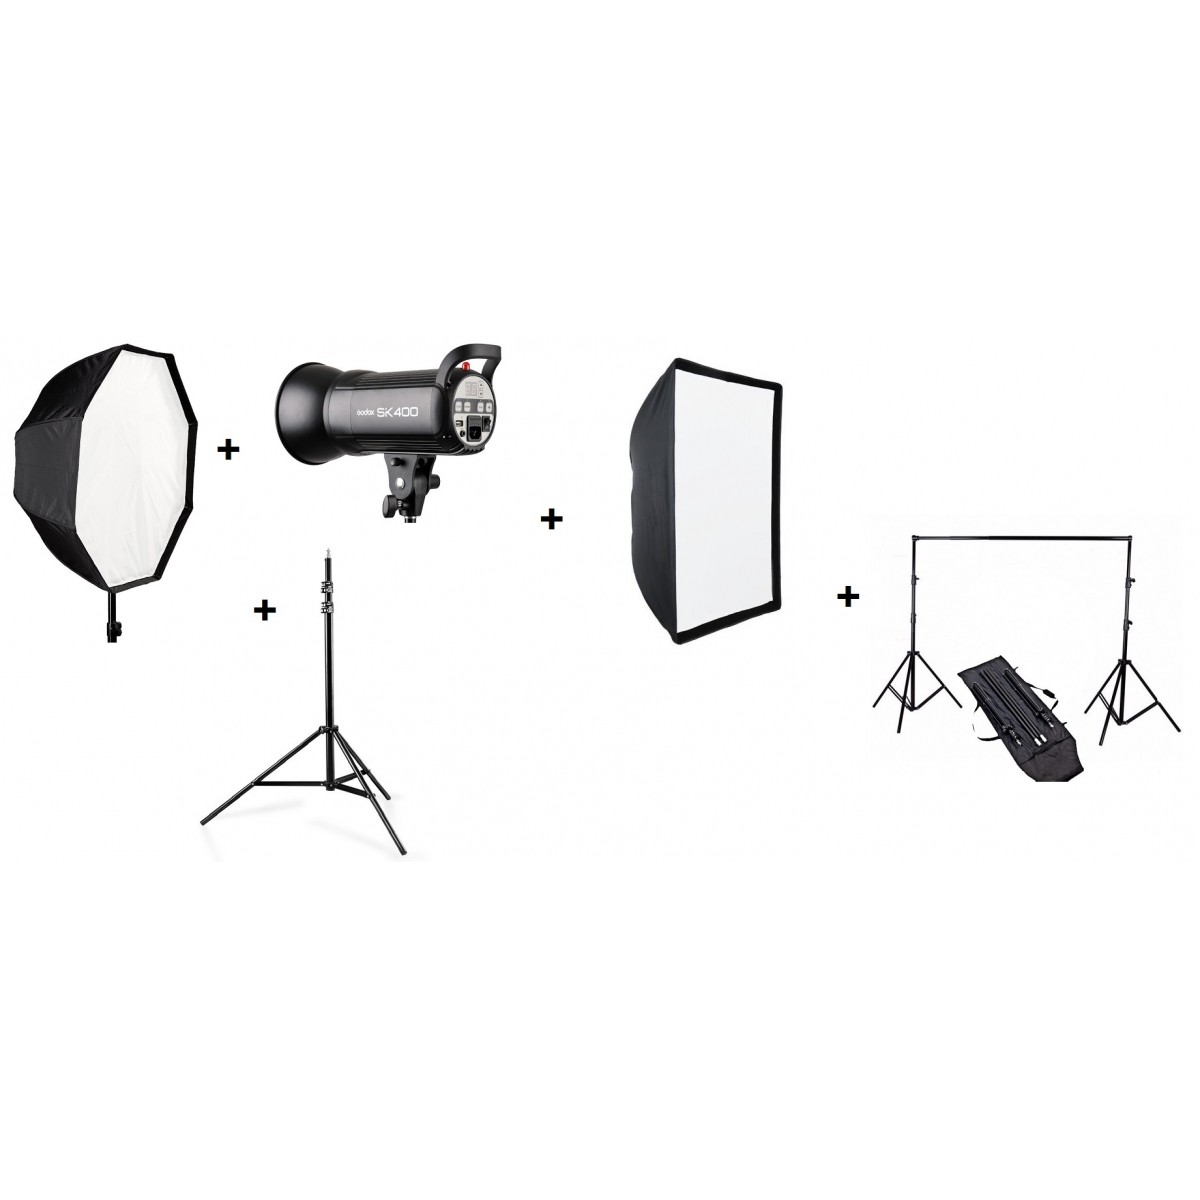 KIT 5X1: BJ-14 + Octabox 120cm + Softbox 60x90 + Tripé wt806 + Sk400 110